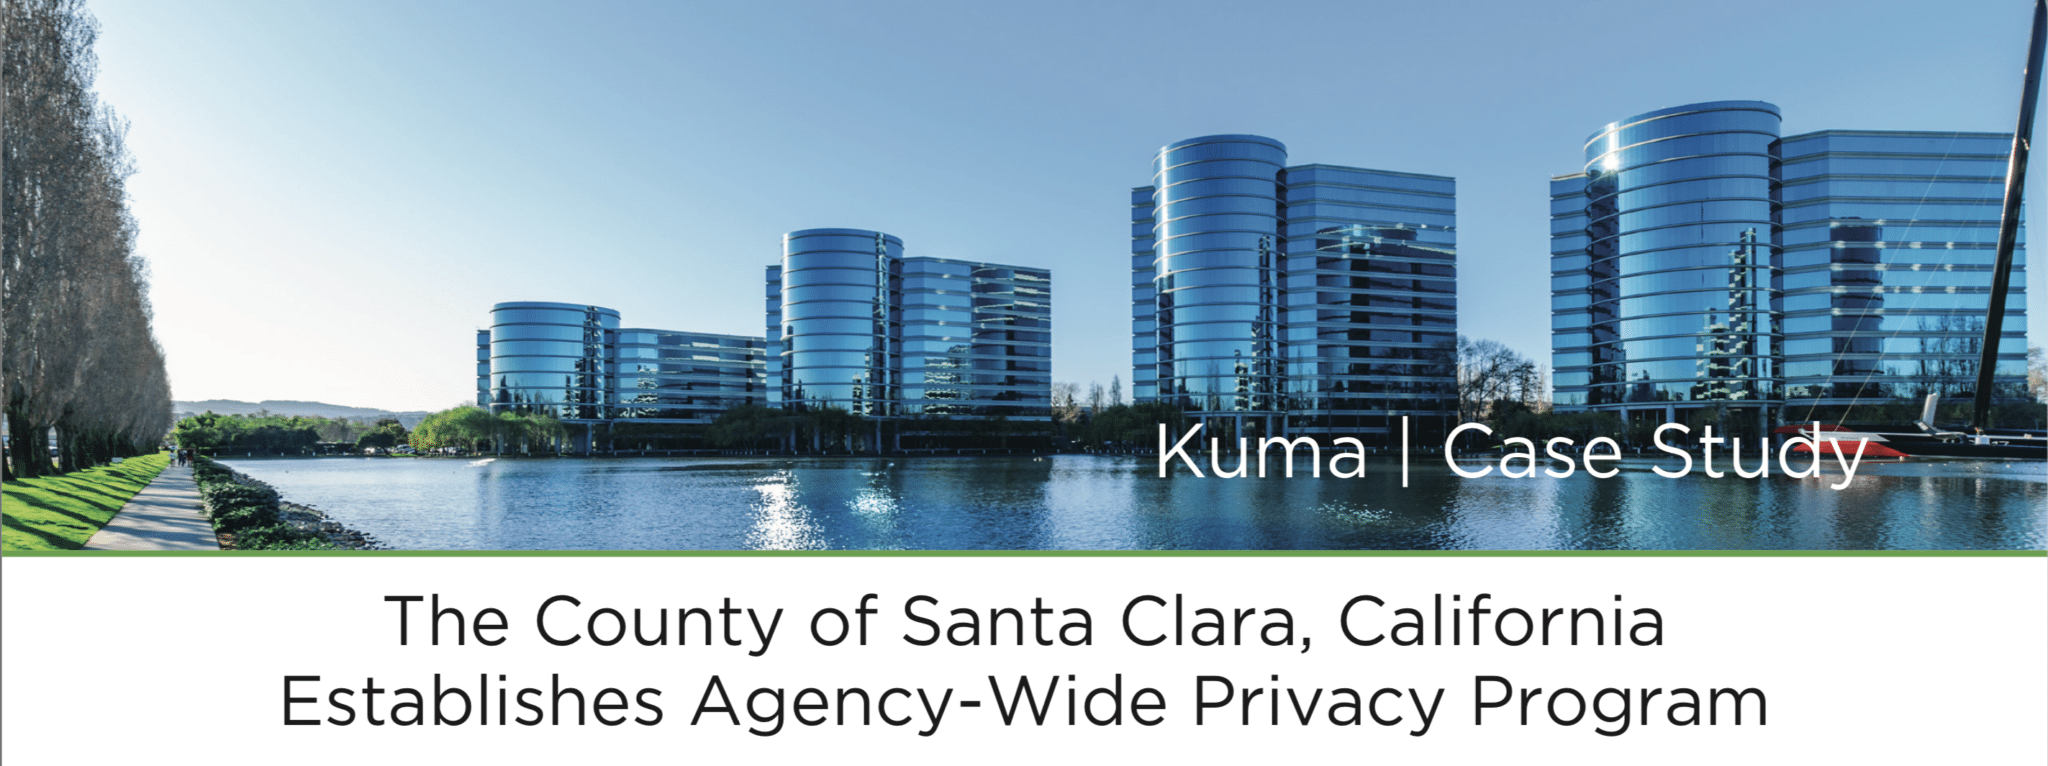 Case Study – The County of Santa Clara, California